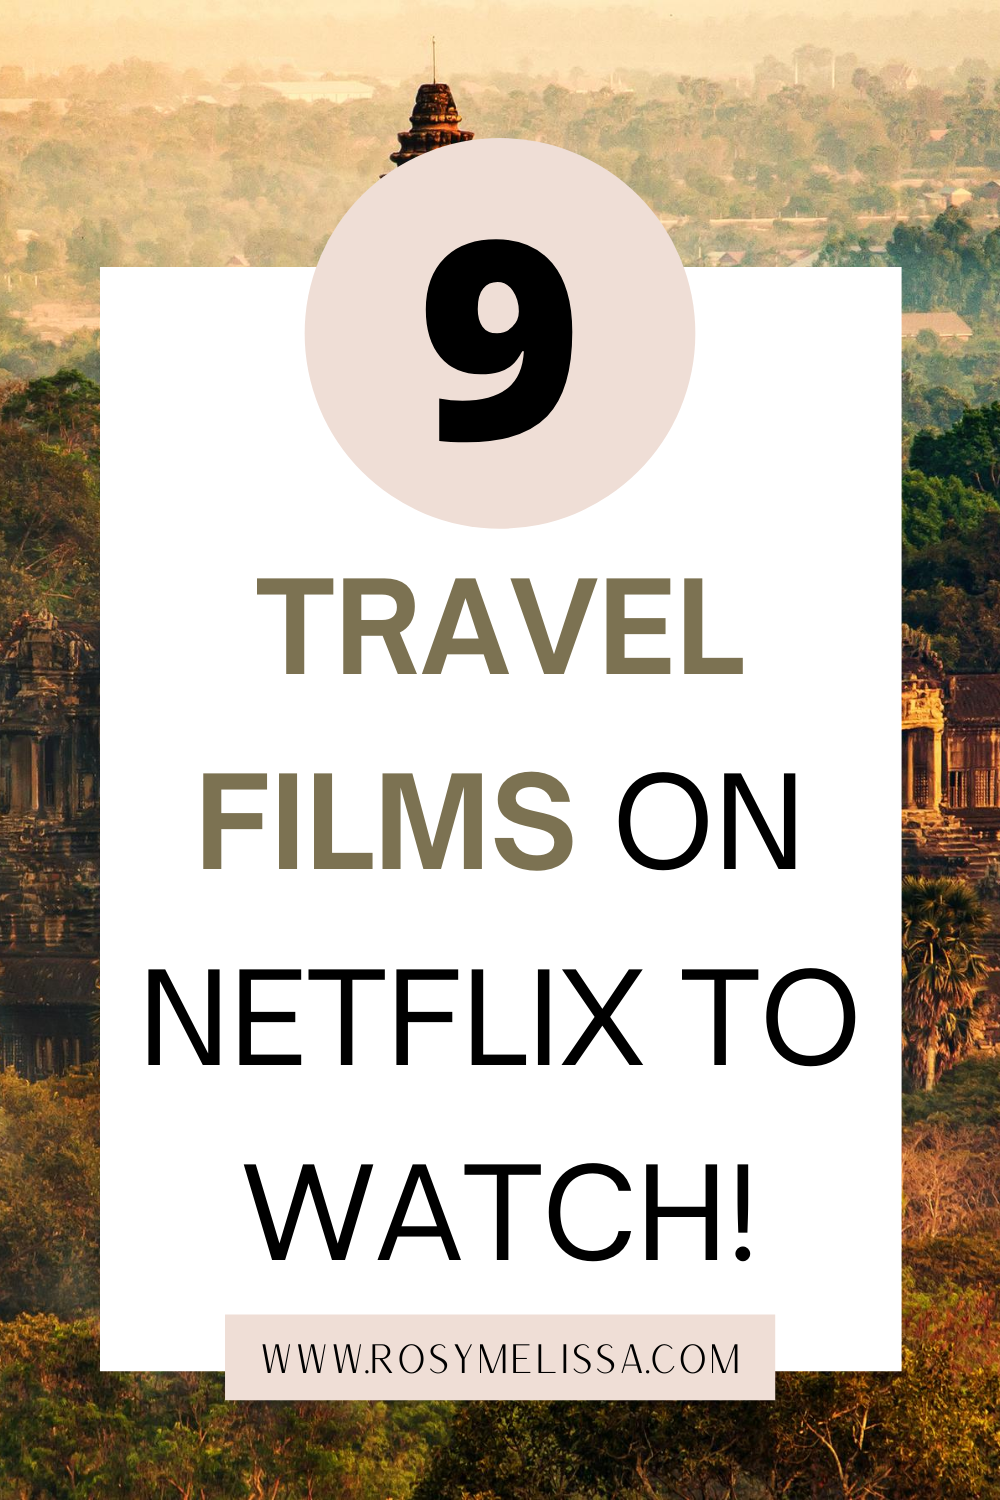 travel films, travel documentaries, travel series on netflix to watch, what to watch on netflix